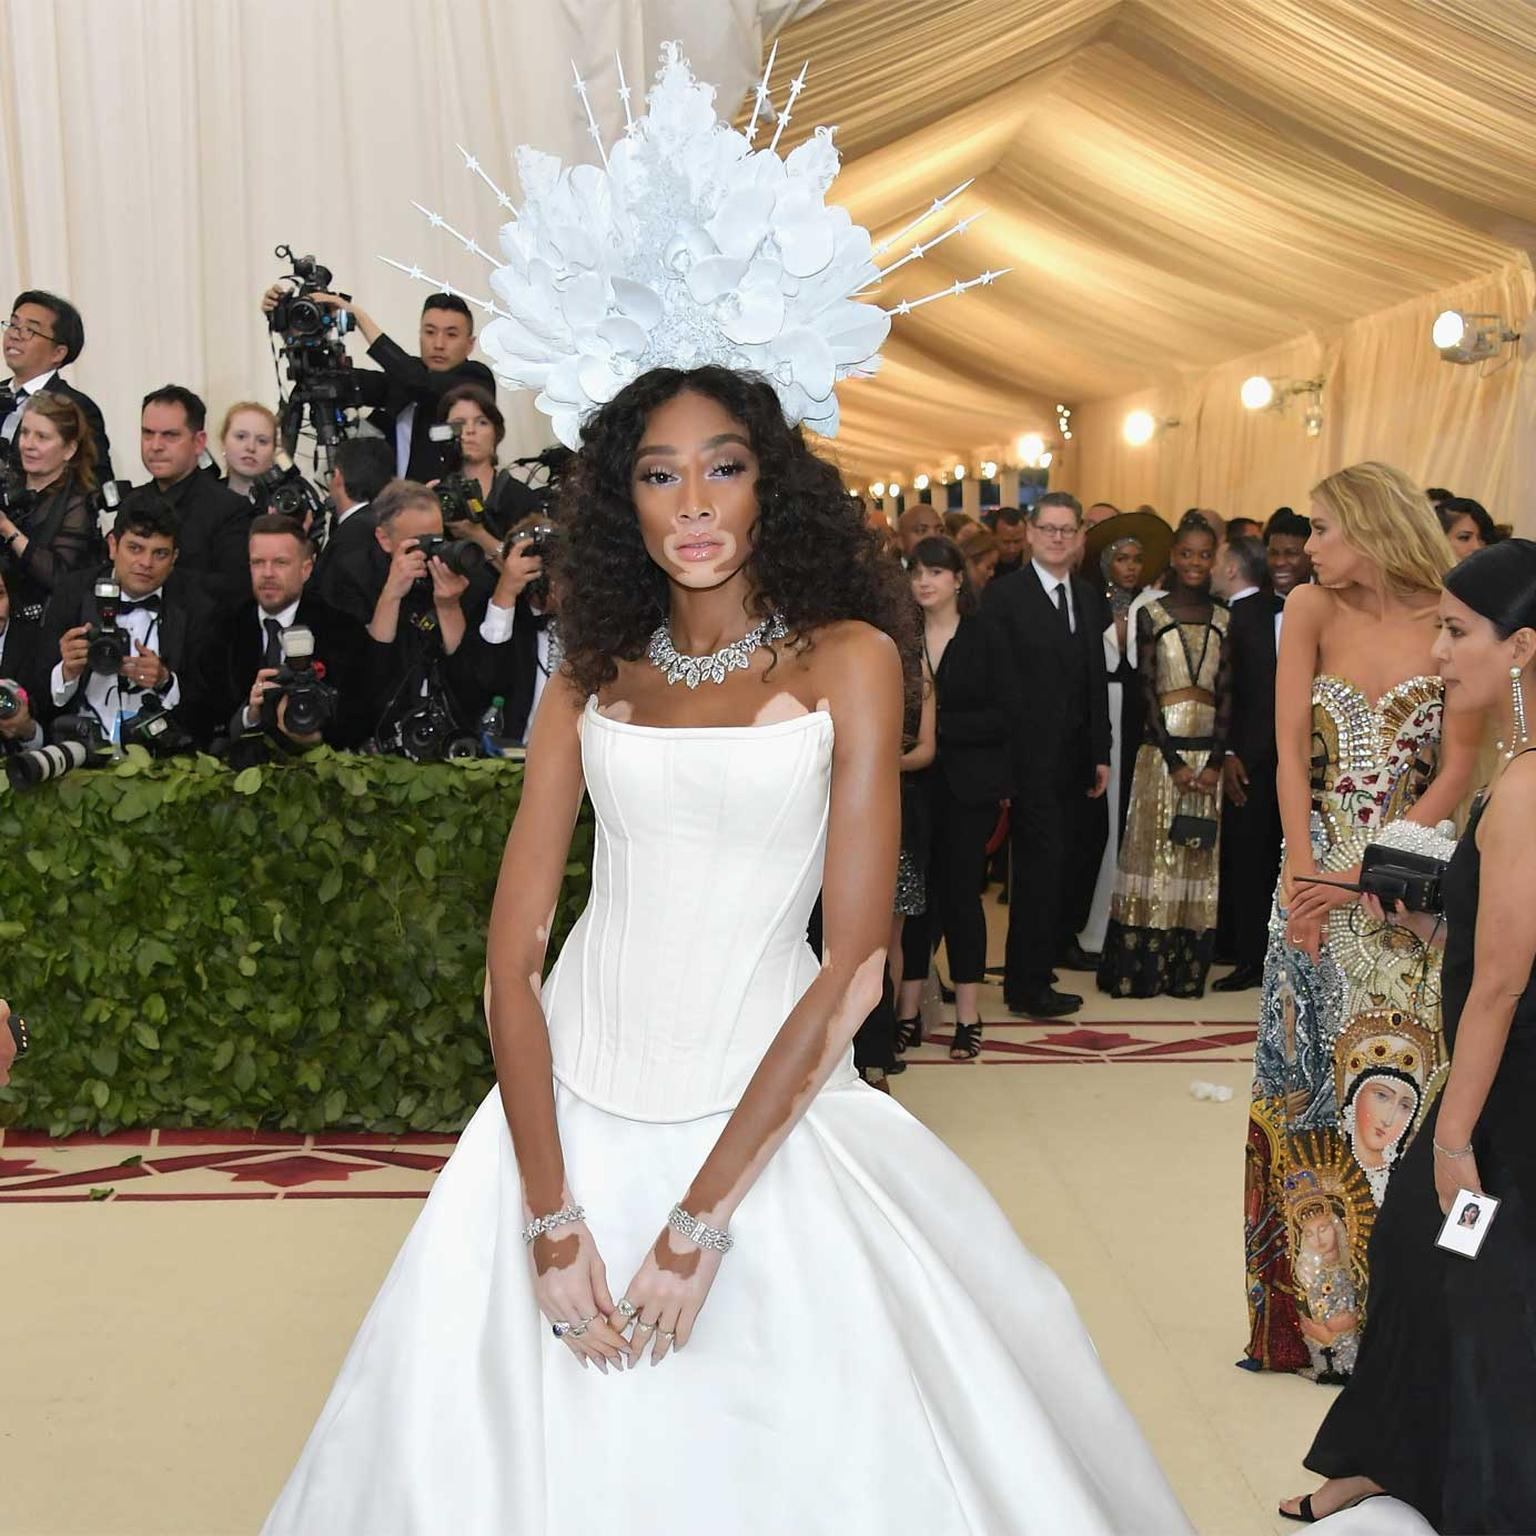 Winnie Harlow in Bulgari high jewellery diamond necklace, bracelets and rings at Met Gala 2018. Credit: Getty Images